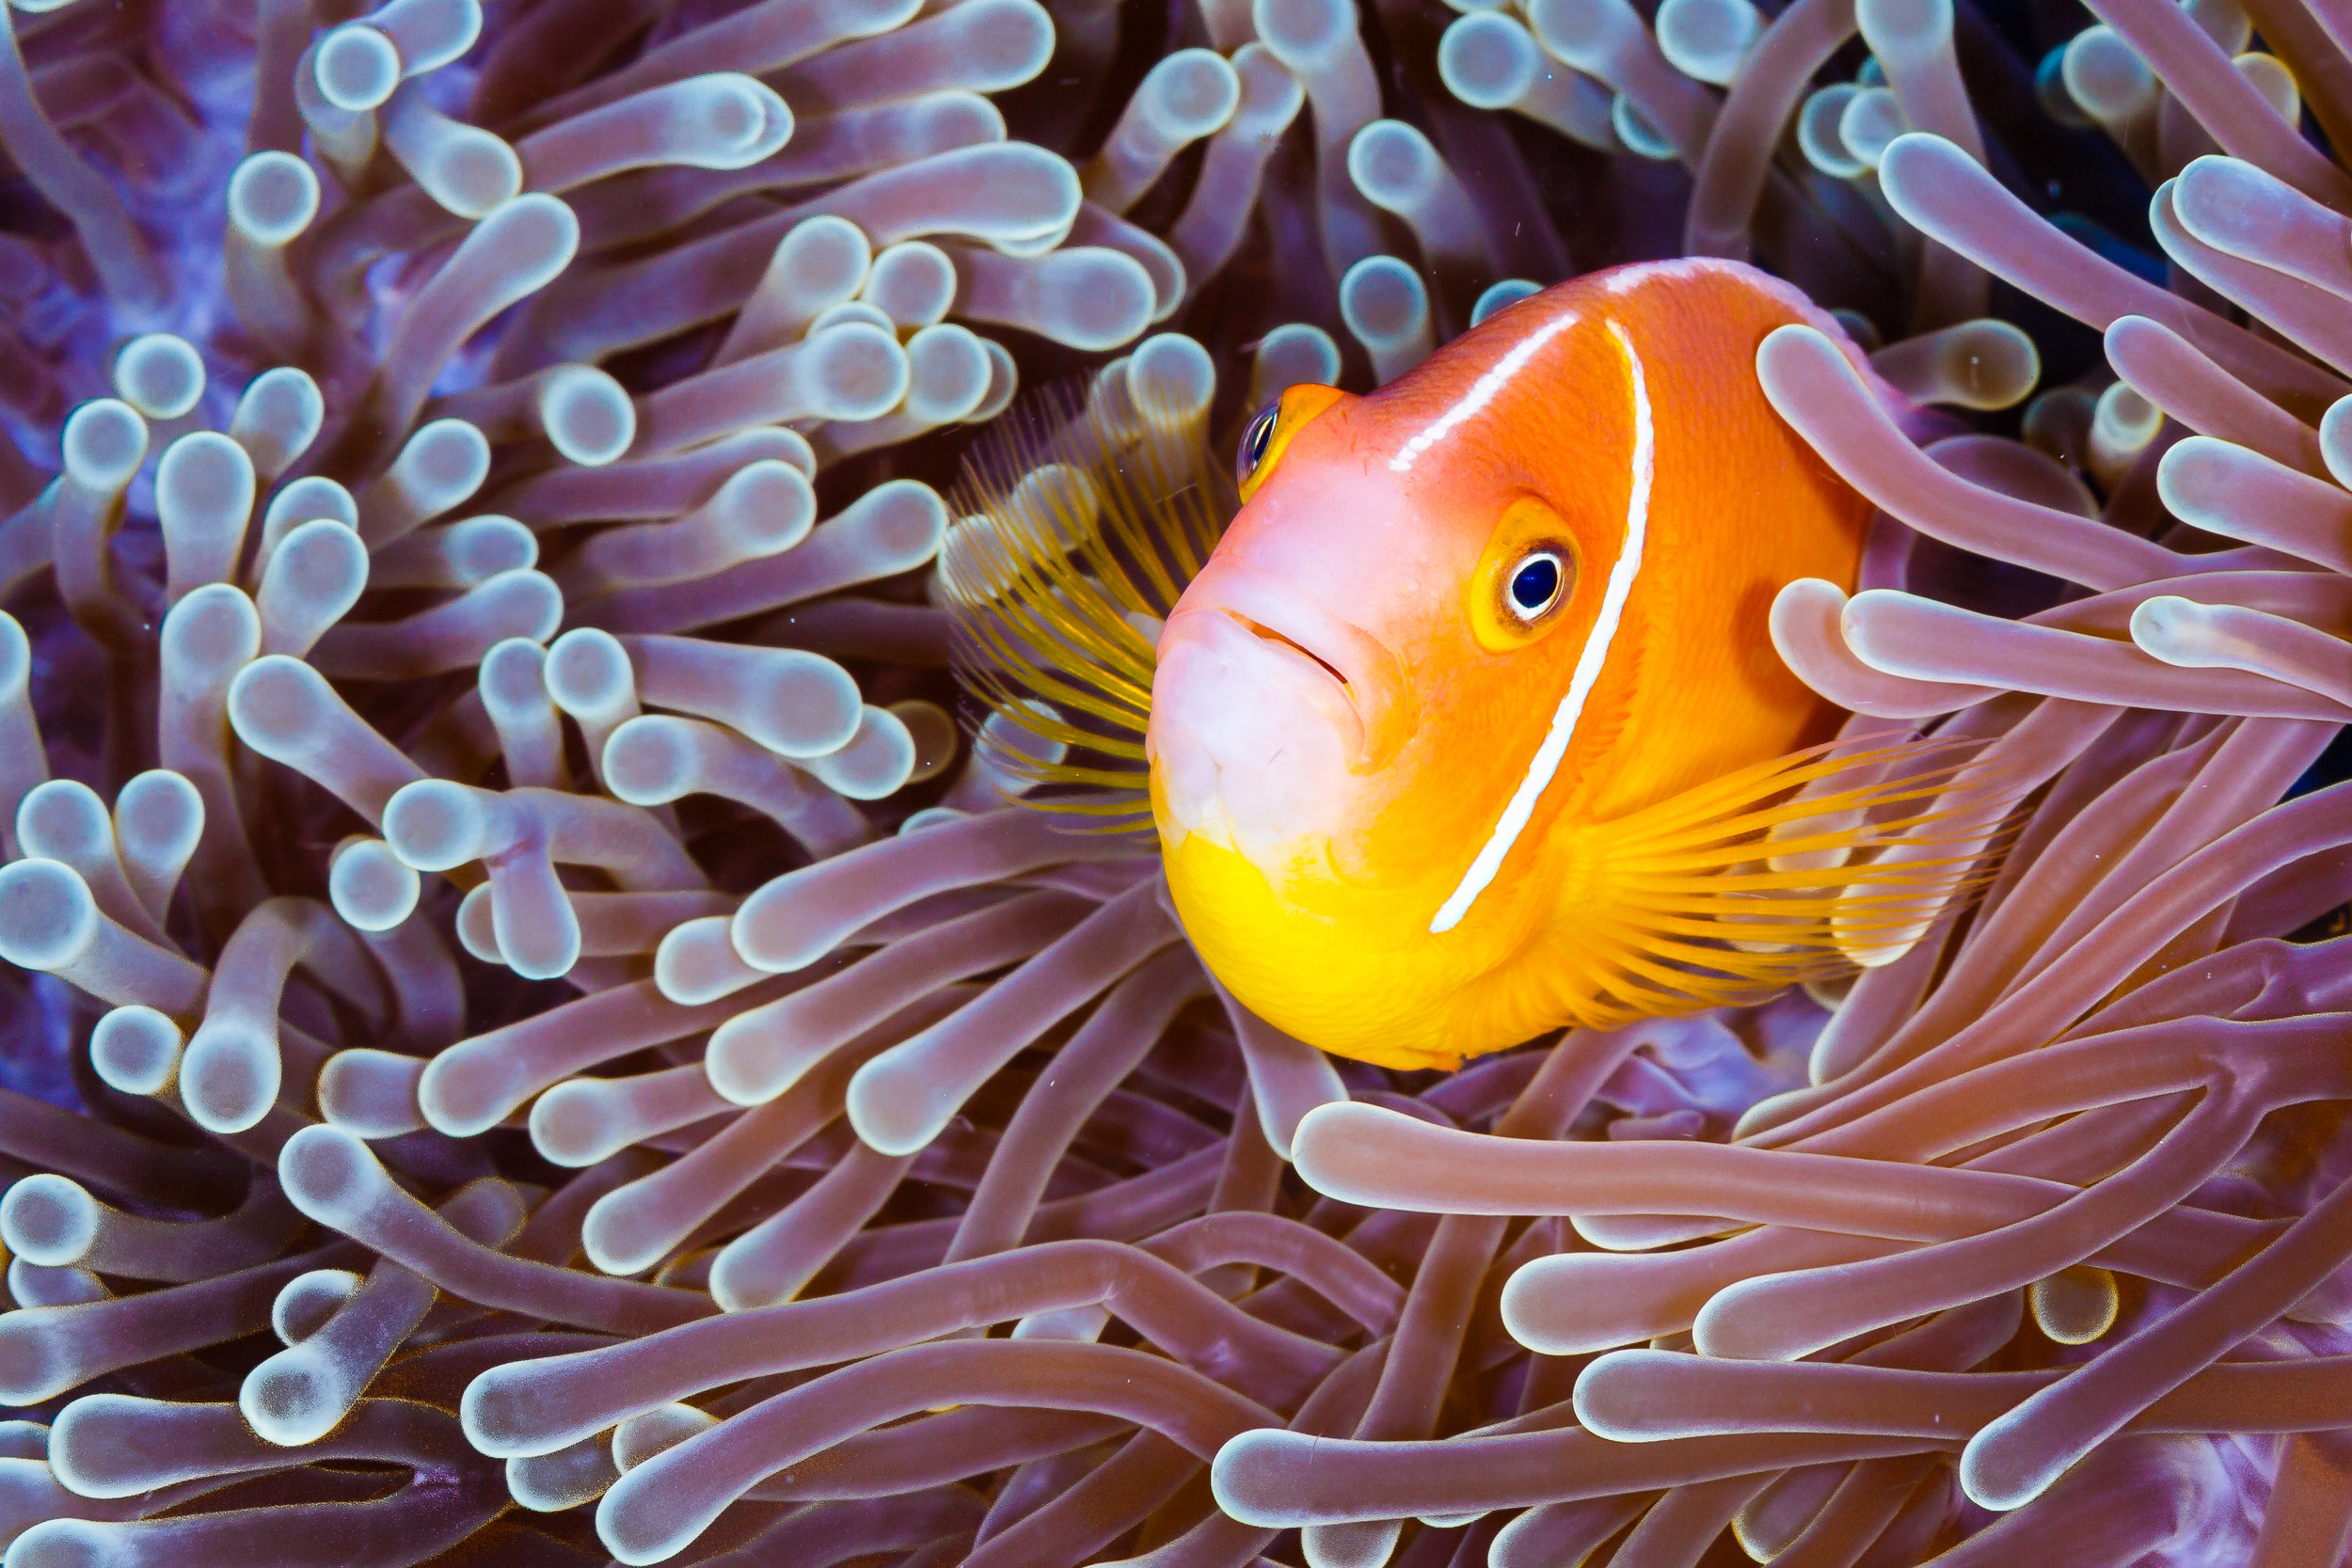 clownfish in anemone CREDIT: GRANT THOMAS / coral reef image bank